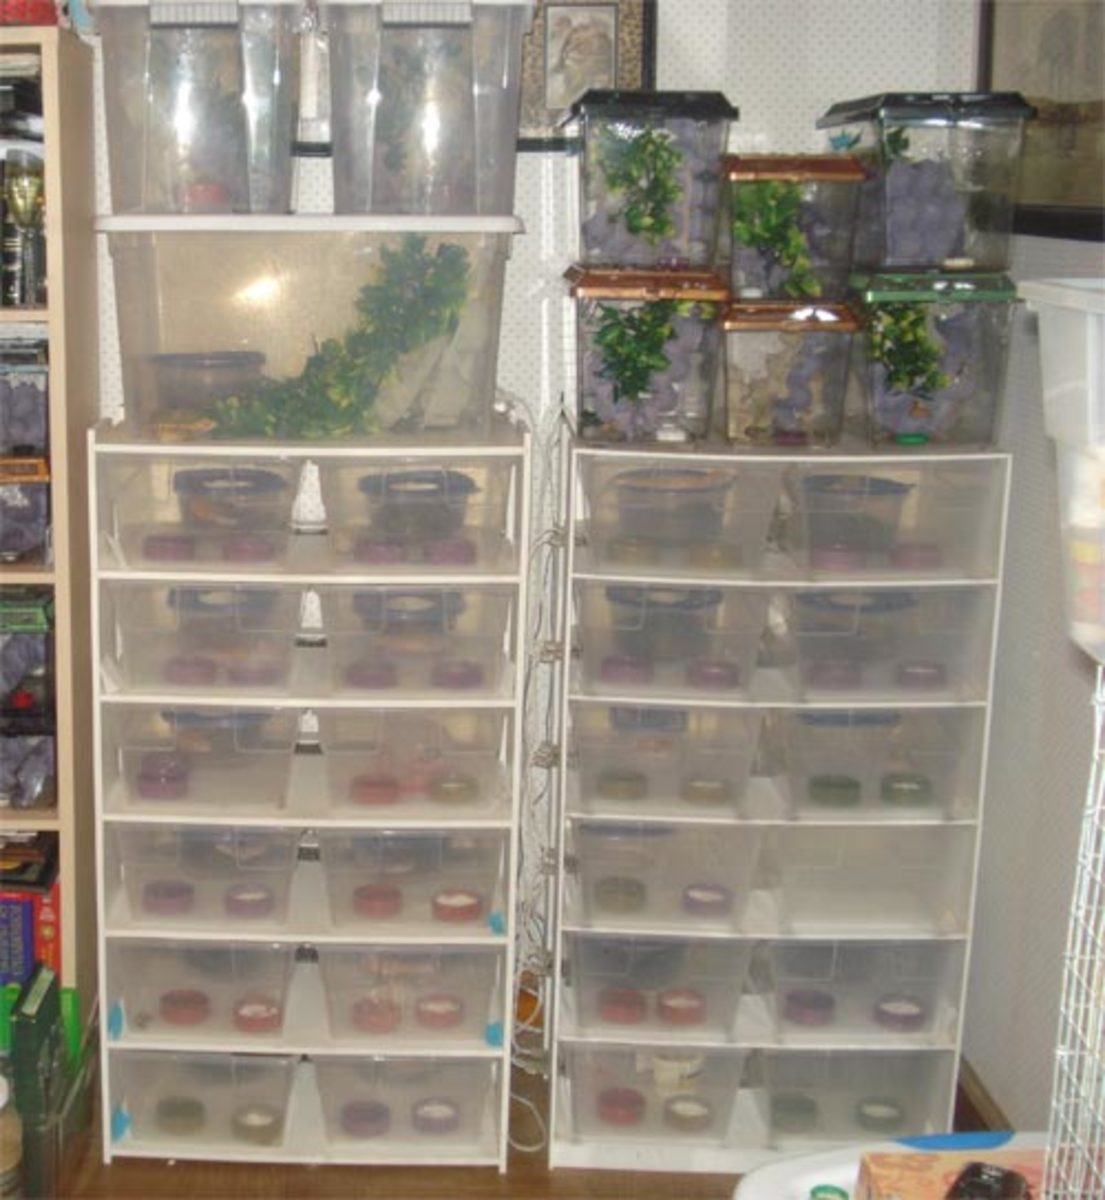 Leopard gecko breeders; crested gecko breeders on left; juvie cresteds and gargs on right